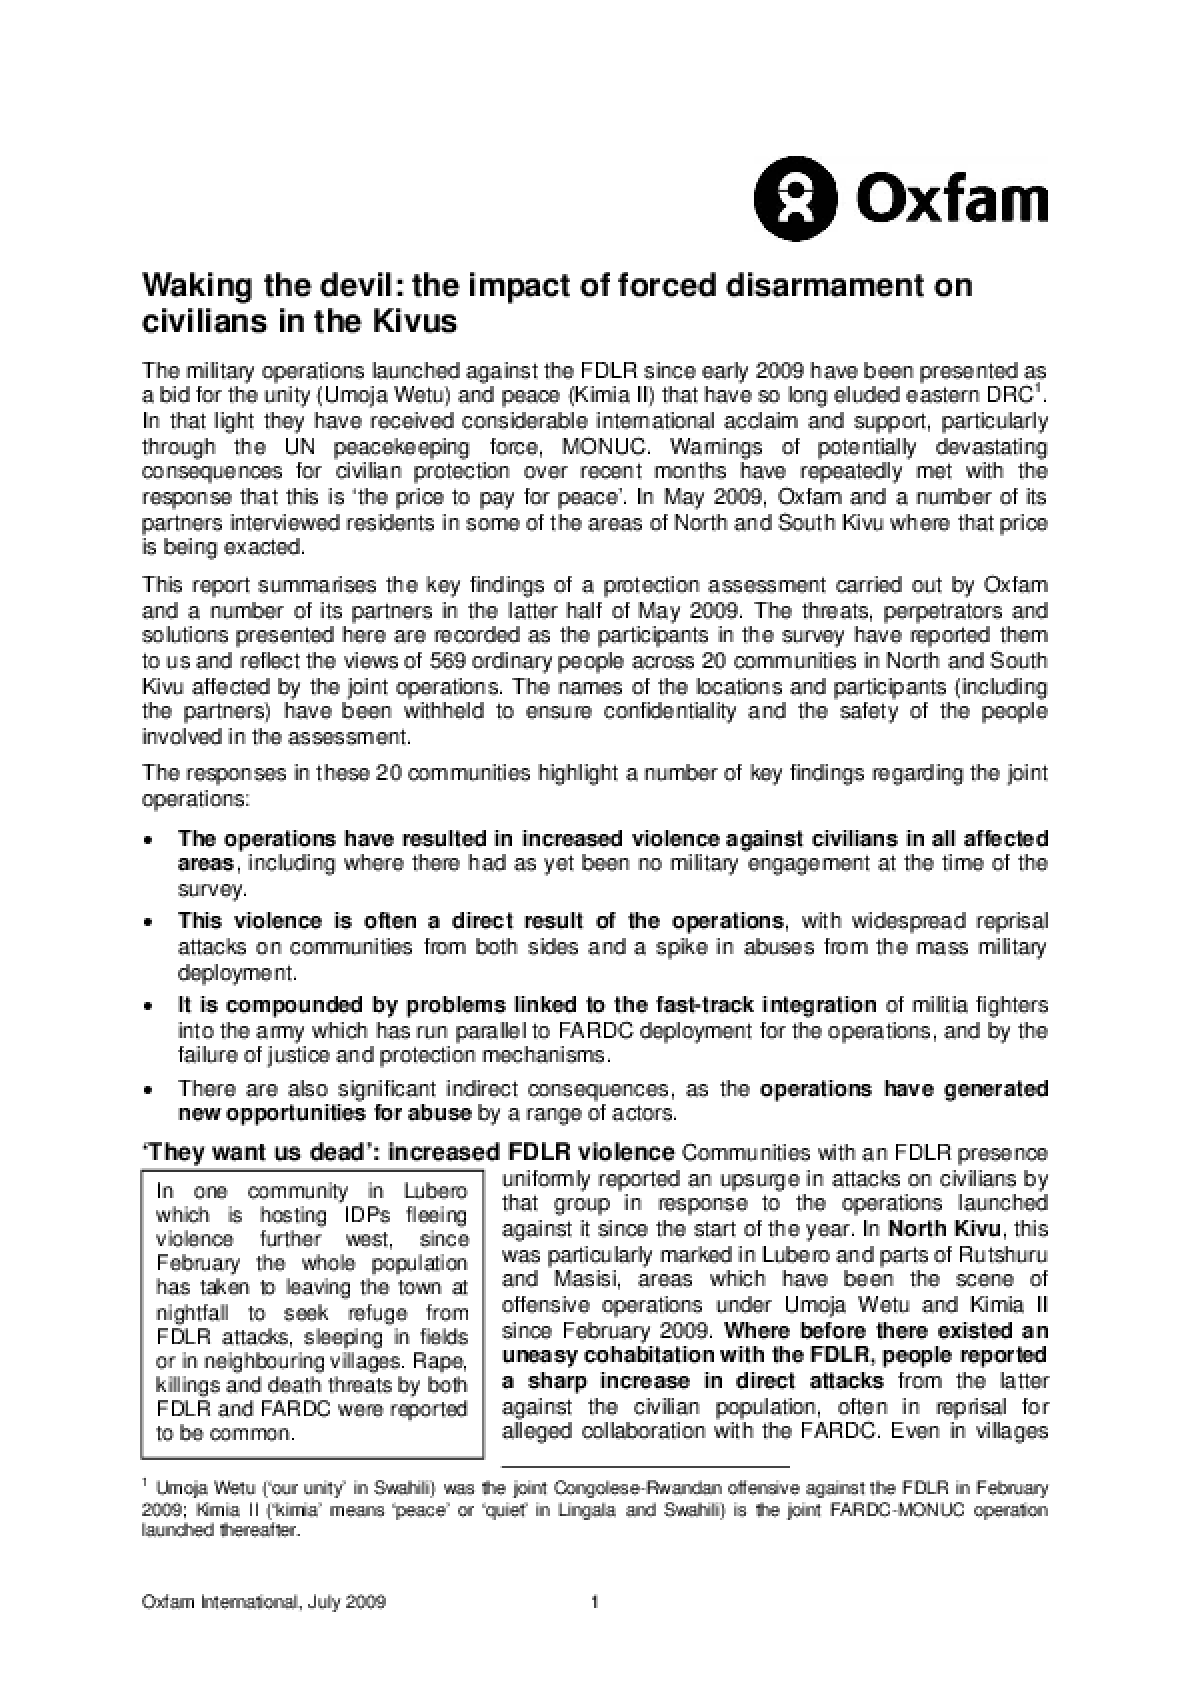 Waking the Devil: The impact of forced disarmament on civilians in the Kivus